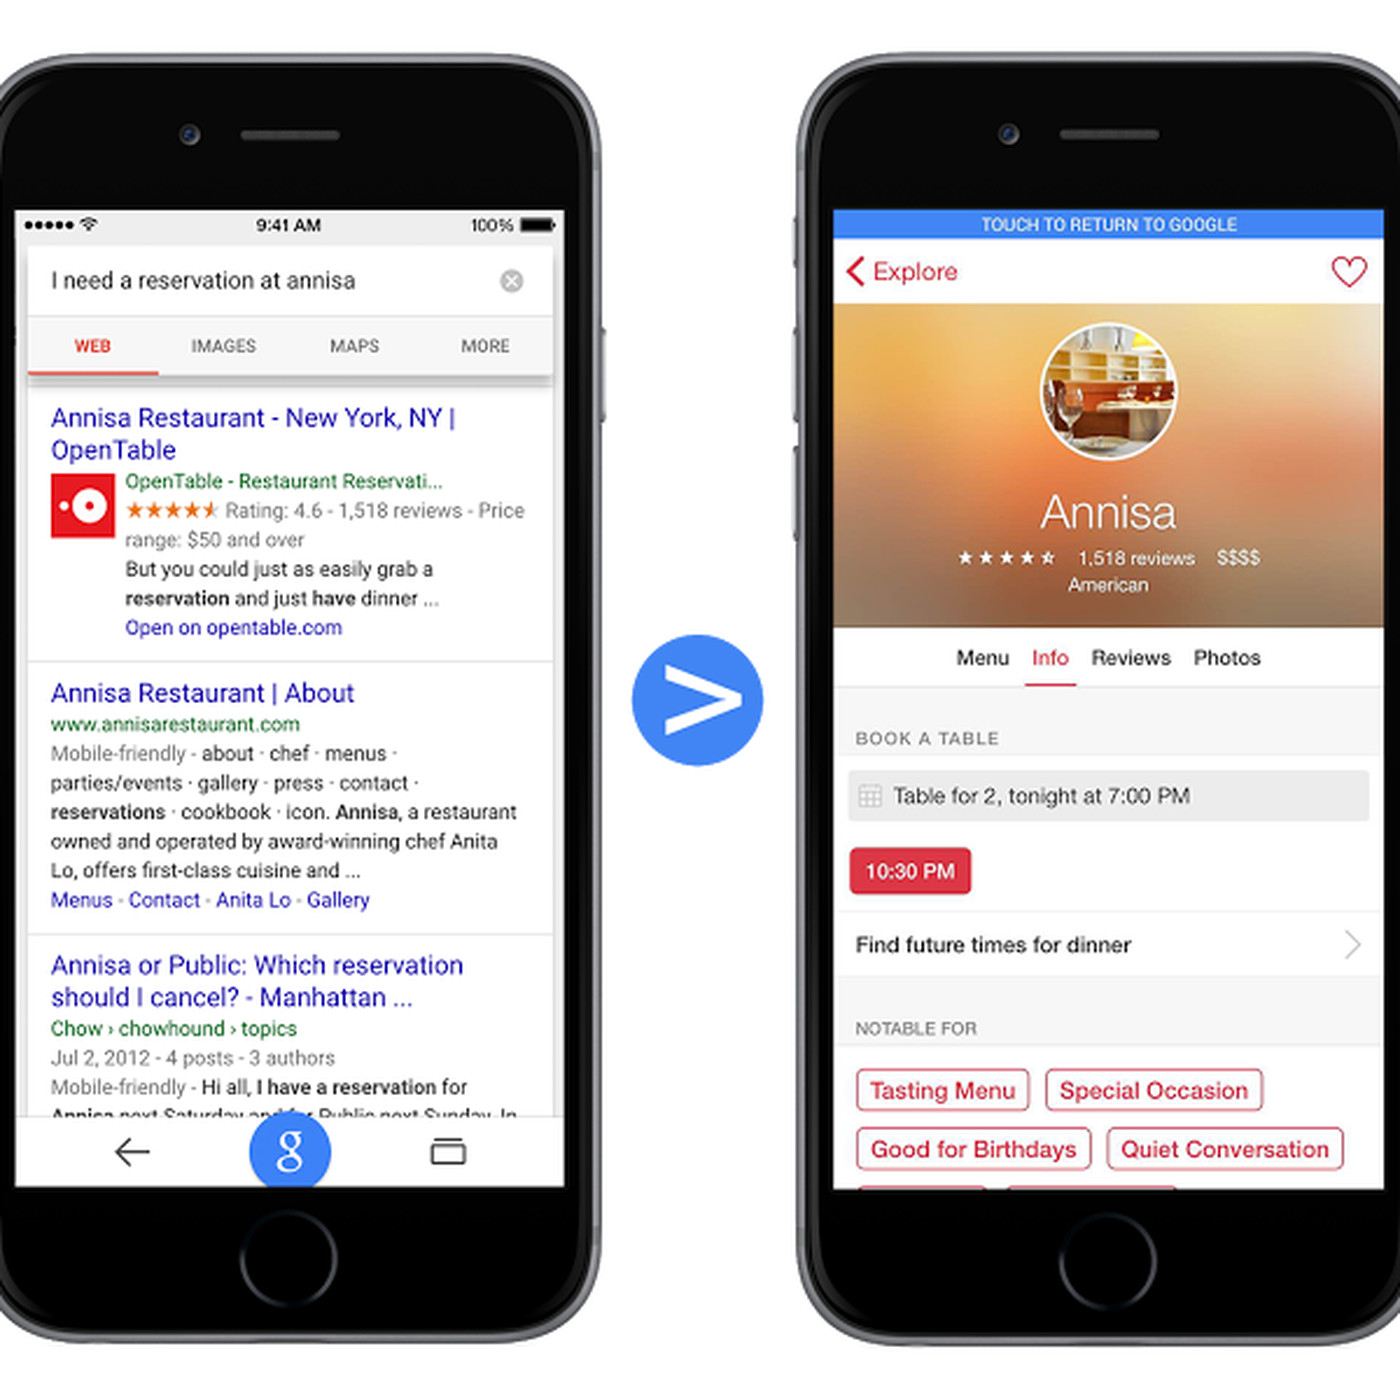 Google Will Soon Link Directly To IOS Apps In Mobile Search The Verge - Google open table